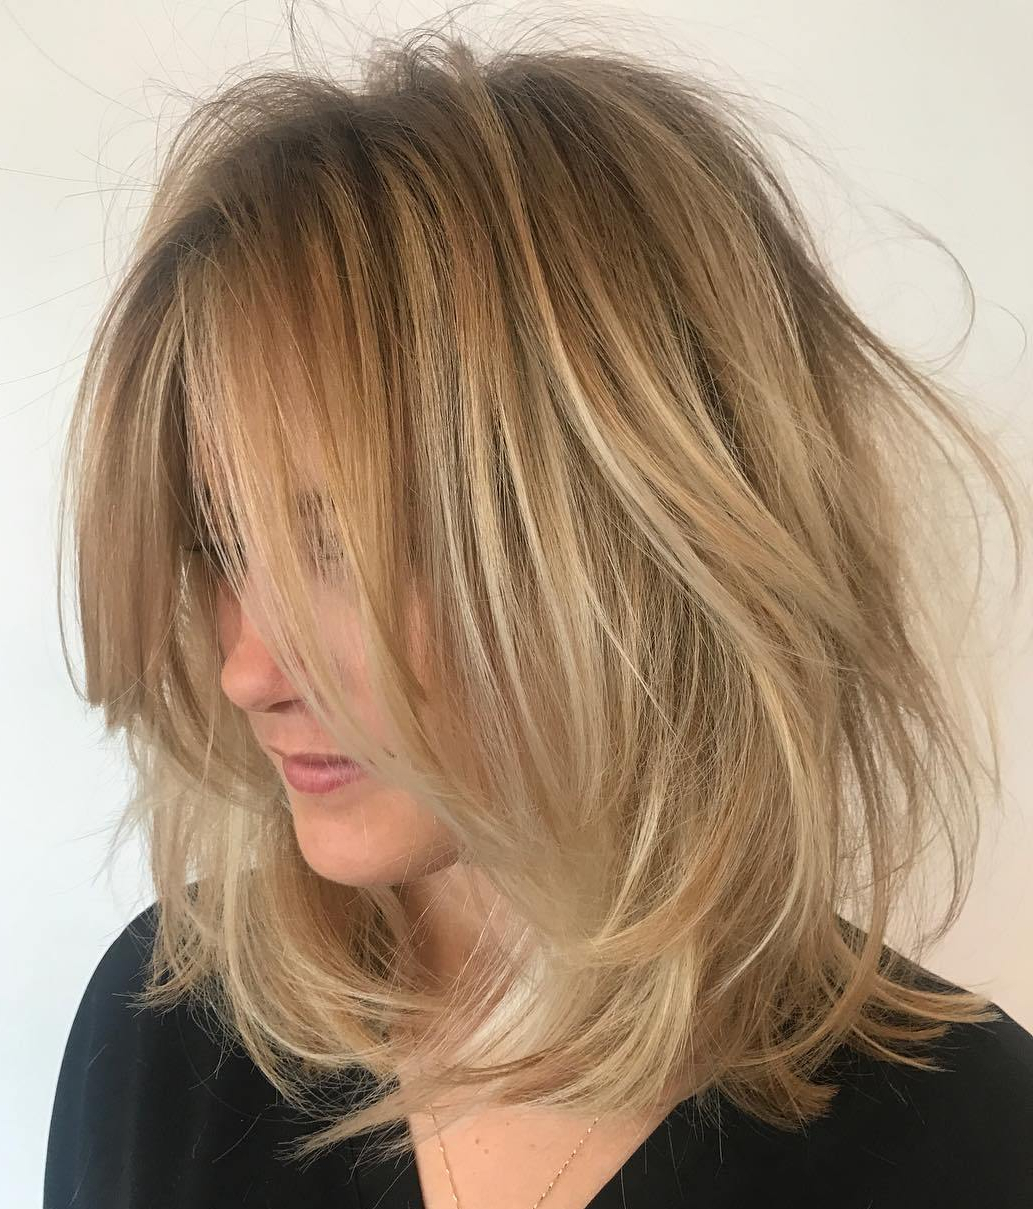 70 Devastatingly Cool Haircuts For Thin Hair Regarding Current Layered Haircuts With Cropped Locks On The Crown (View 7 of 20)